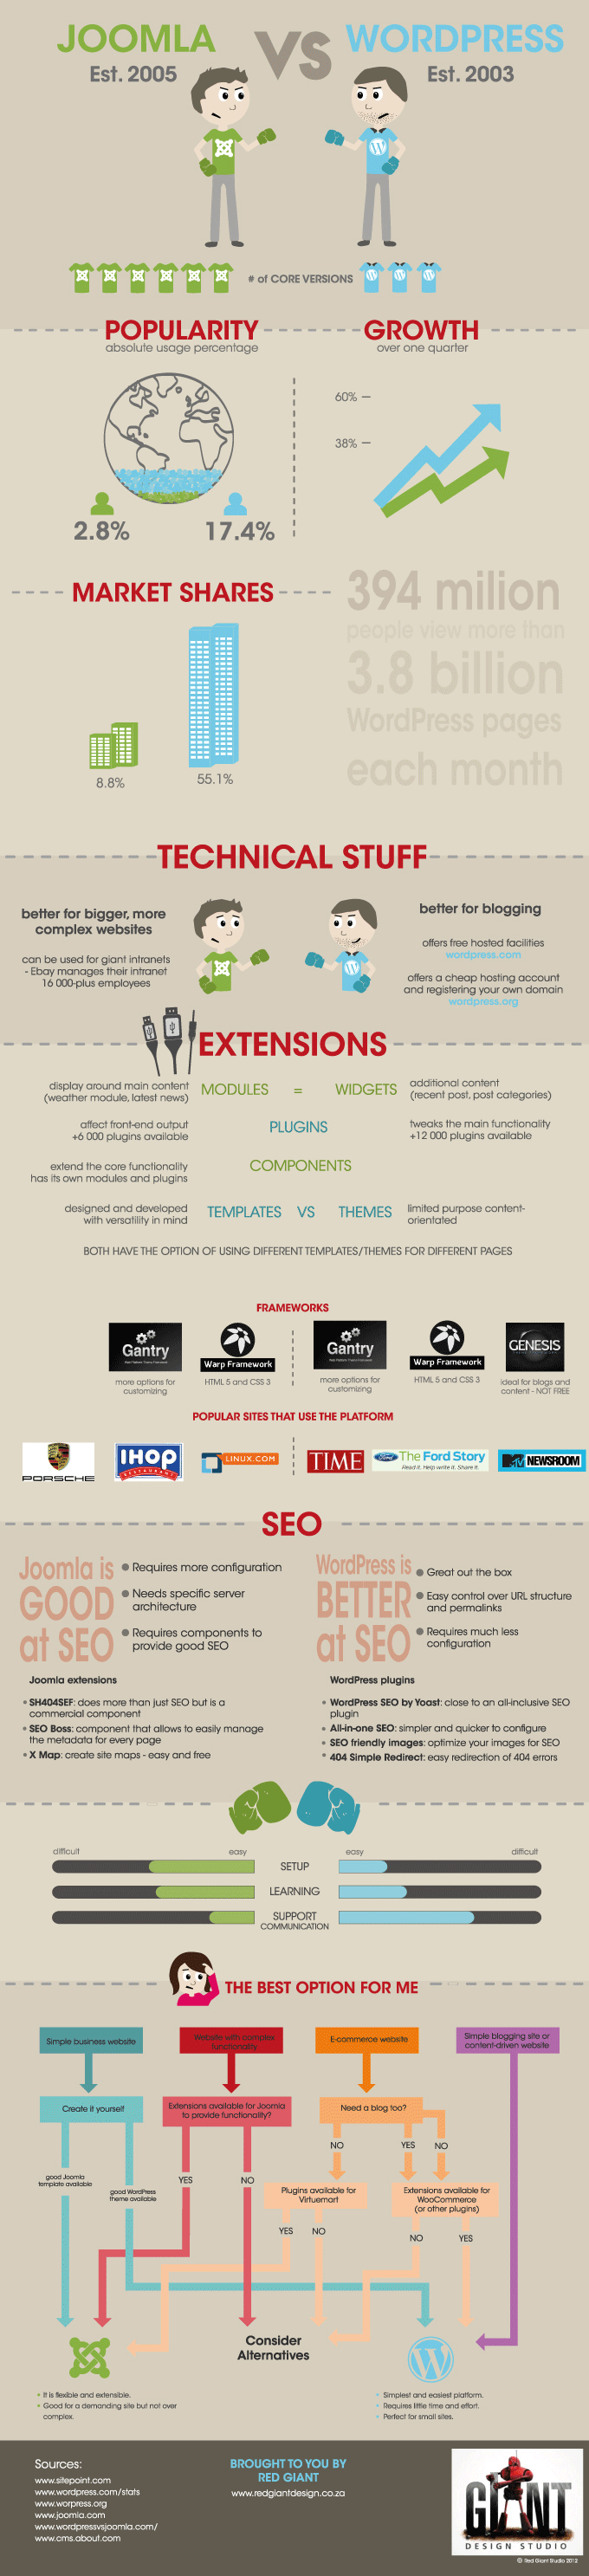 Wordpress contro Joomla